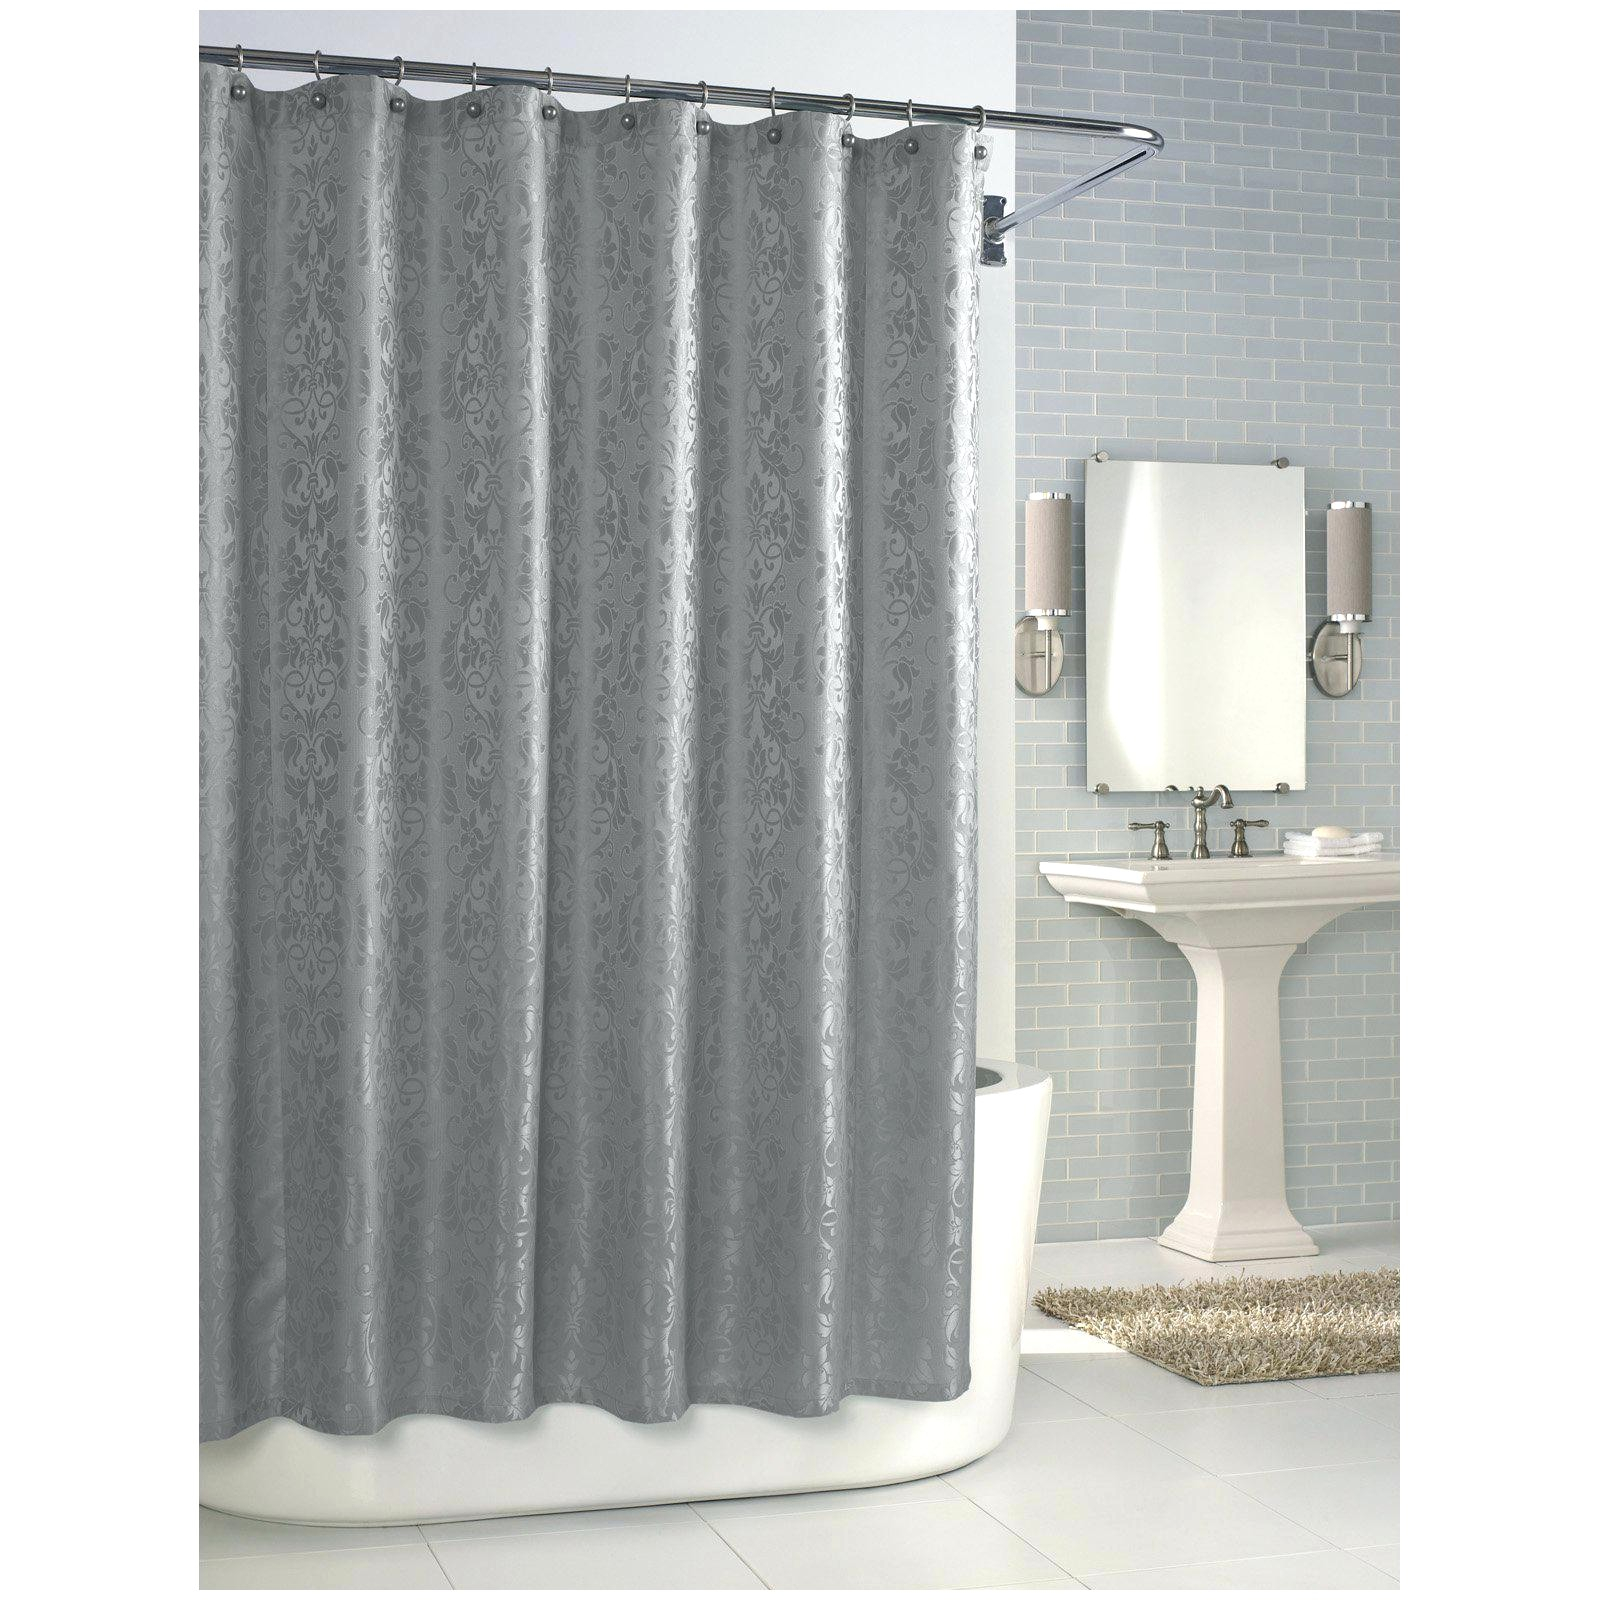 Gucci Print Shower Curtain Shower Curtains Ideas